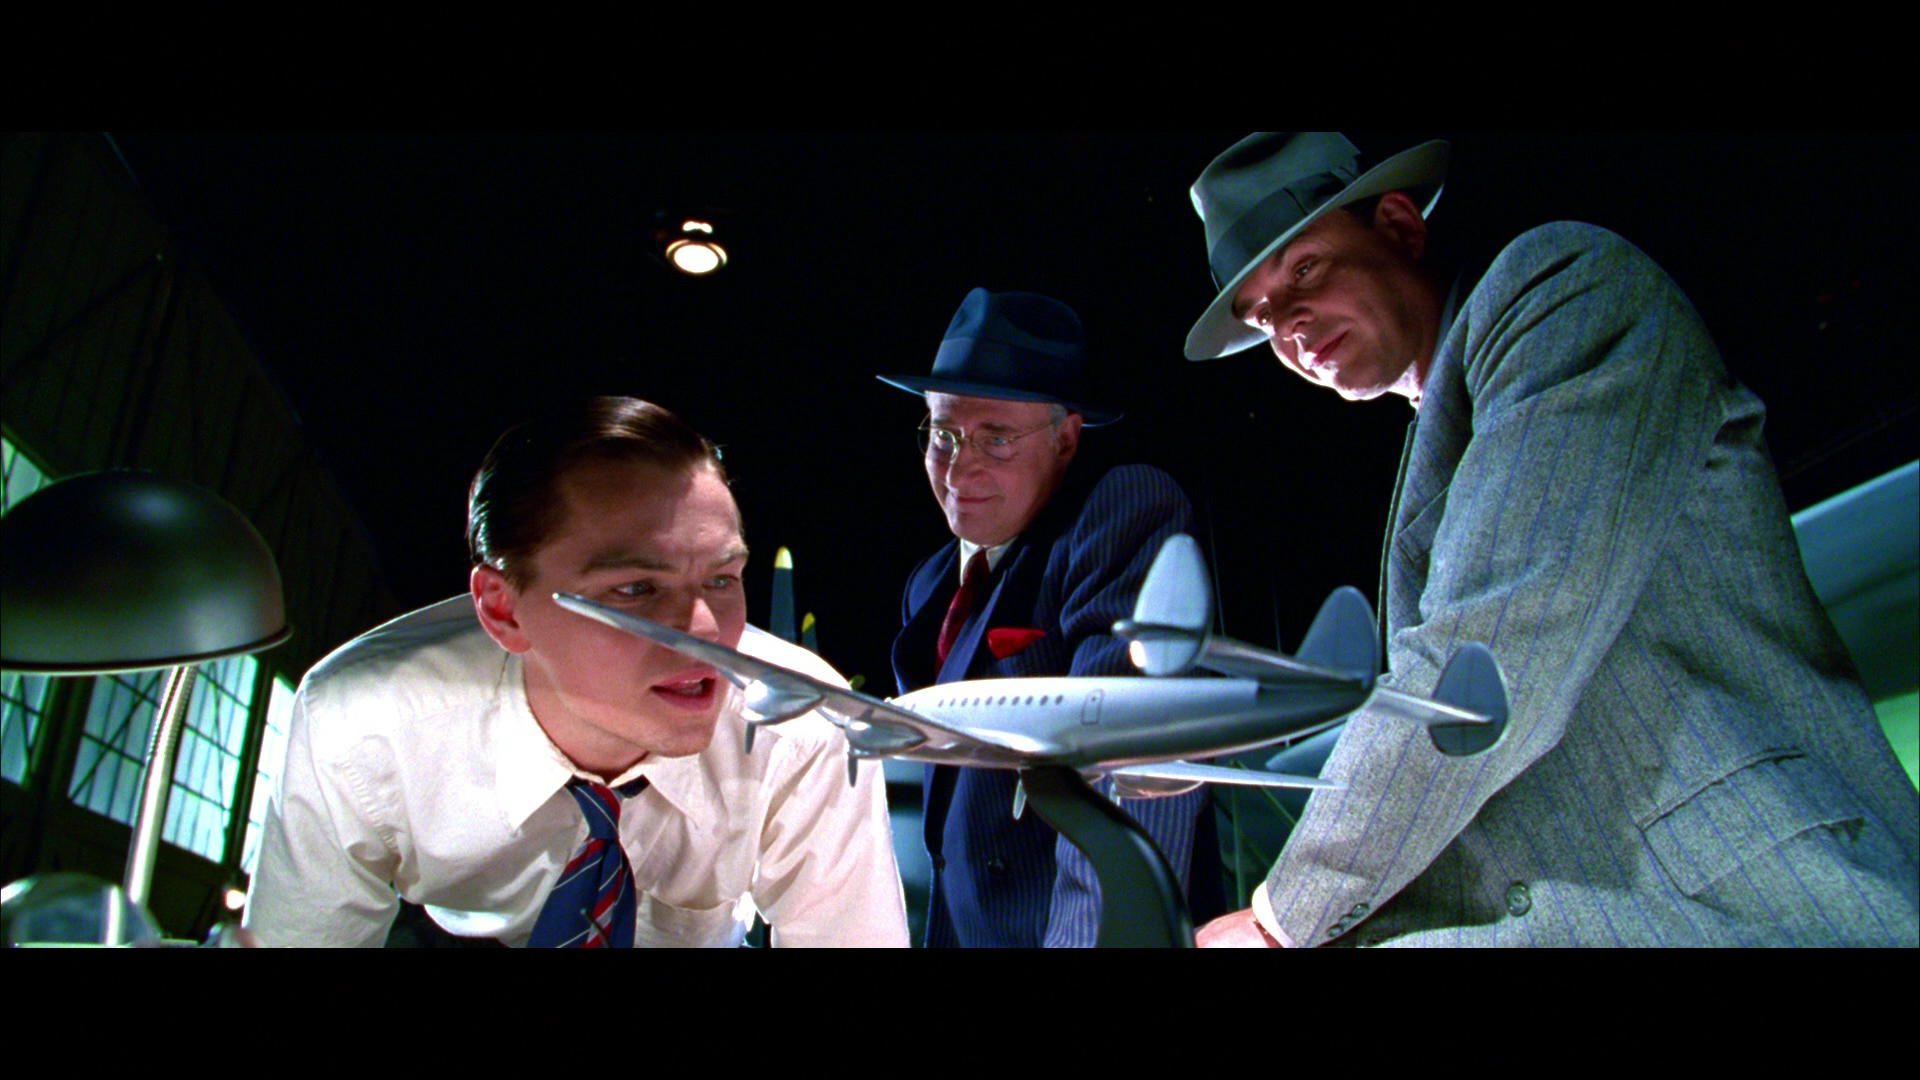 the aviator directed by martin scorsese essay Film essay – martin scorsese and the aviator (set for release in 2004), scorsese has made a that it can be established who directed a film as soon as you.